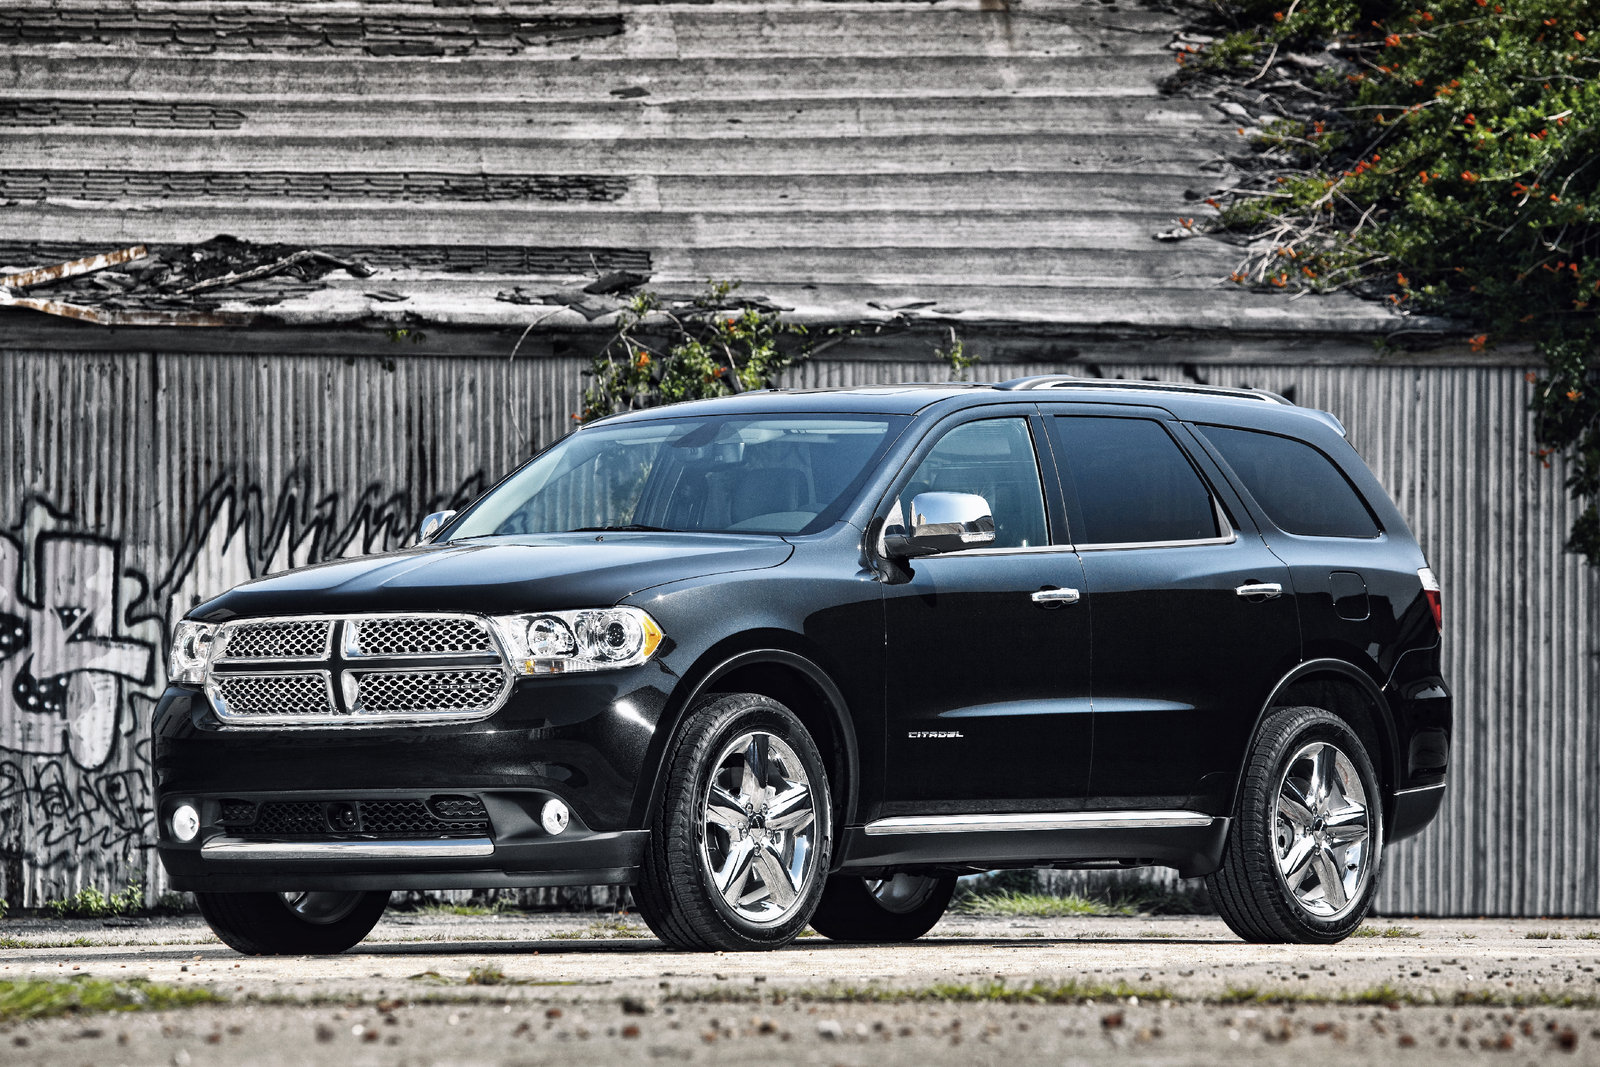 Colorado Springs Toyota >> 2011-dodge-durango_100320657_h.jpg